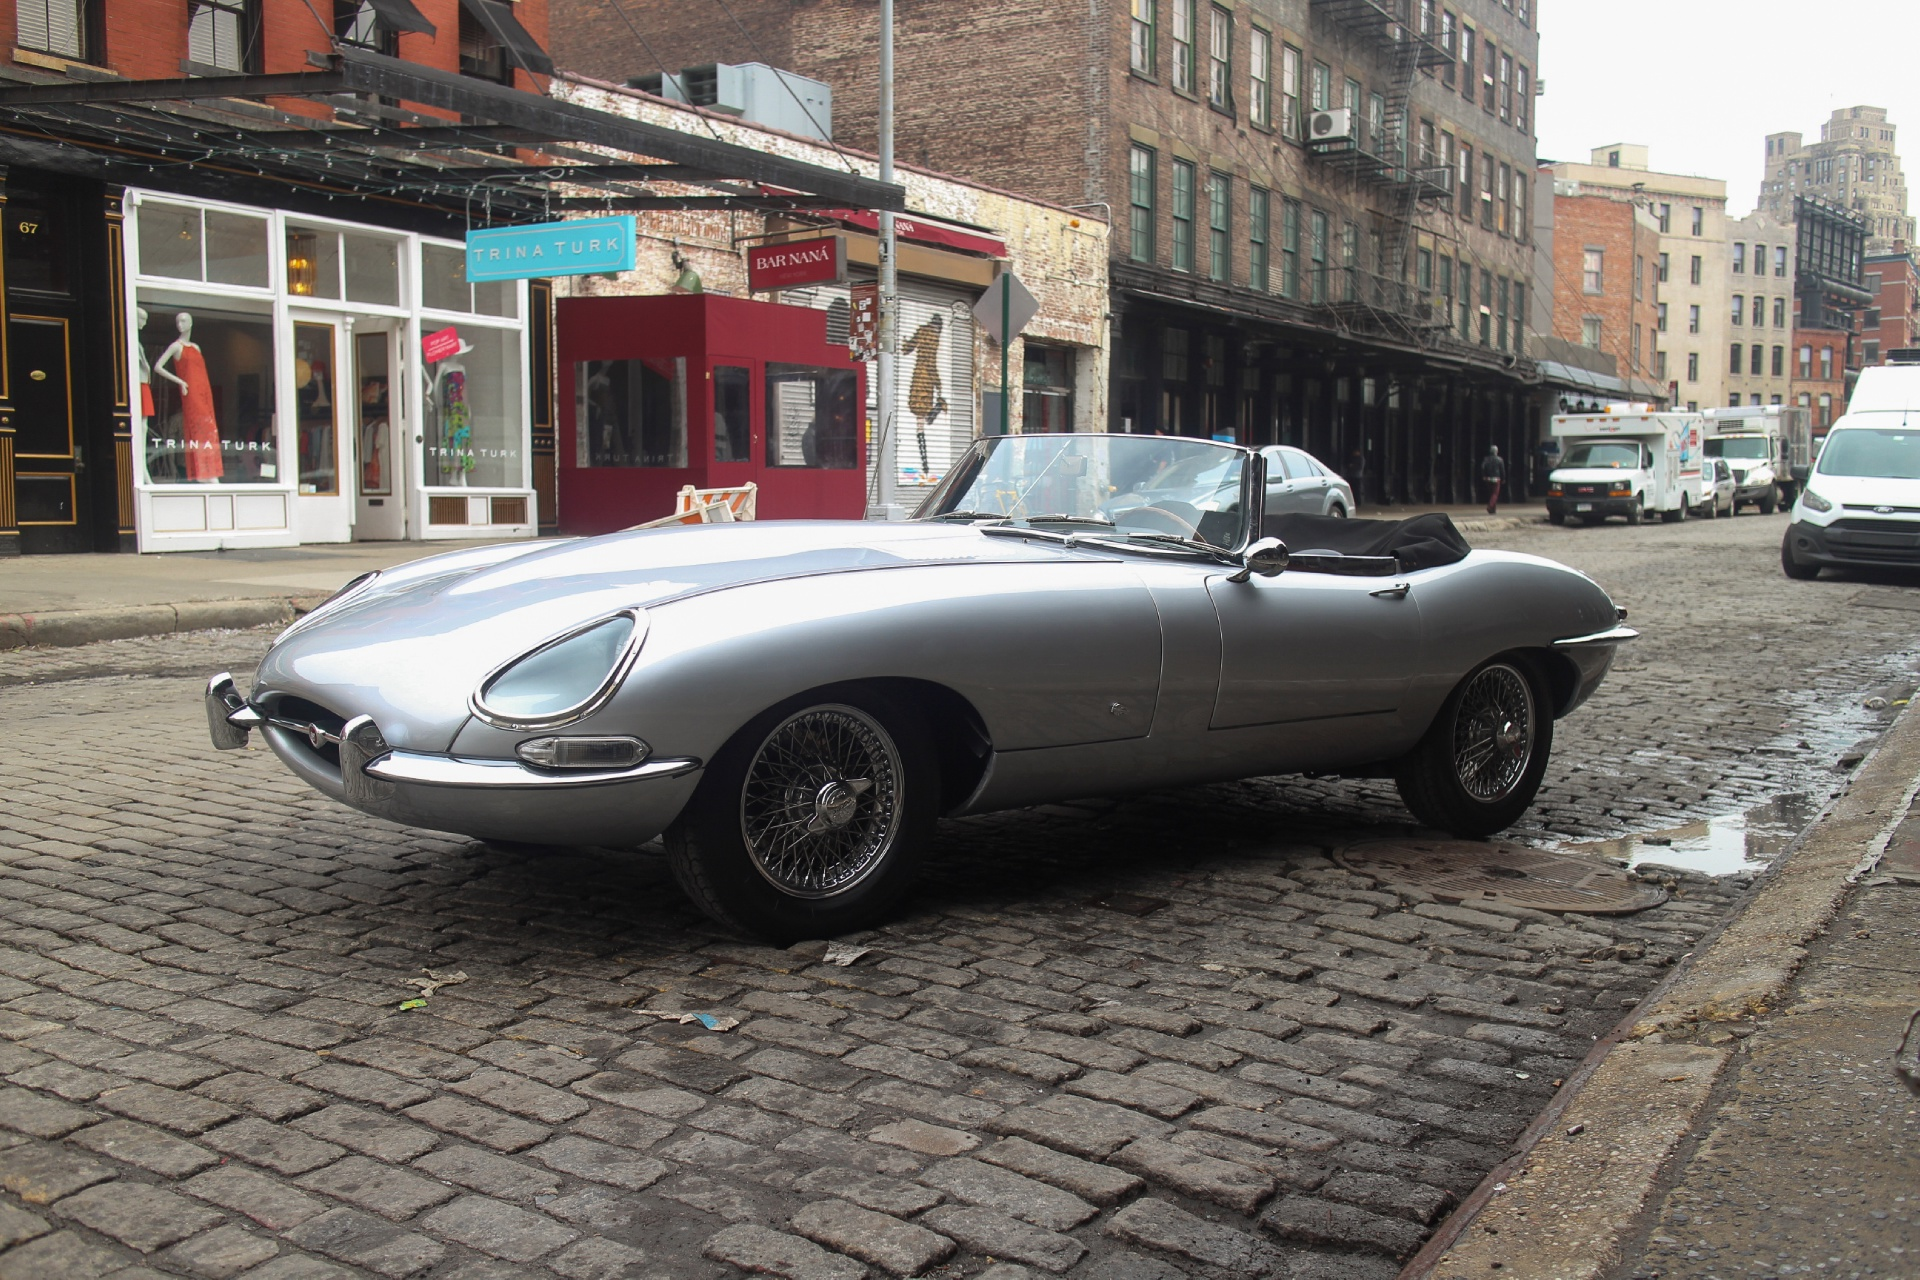 Used Cars For Sale In Jersey City Nj Auto Com >> 1961 Jaguar E-Type Stock # 691 for sale near New York, NY ...